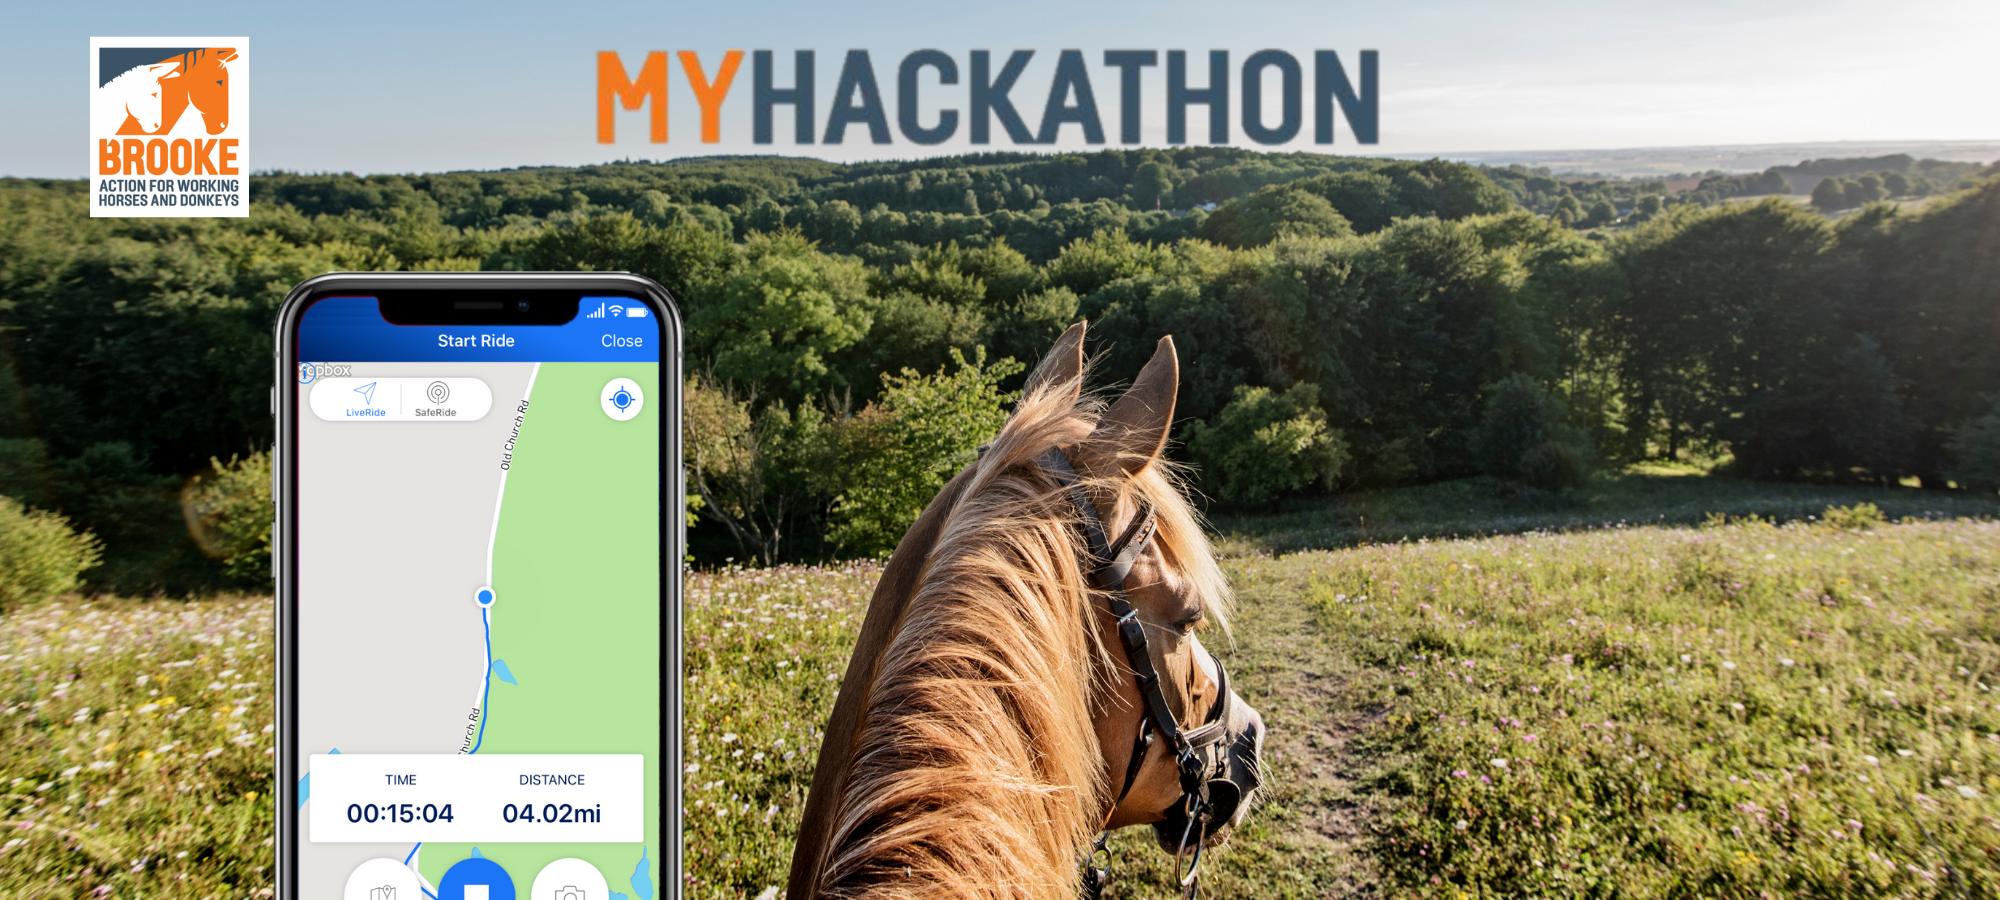 myhackaton horse riding app